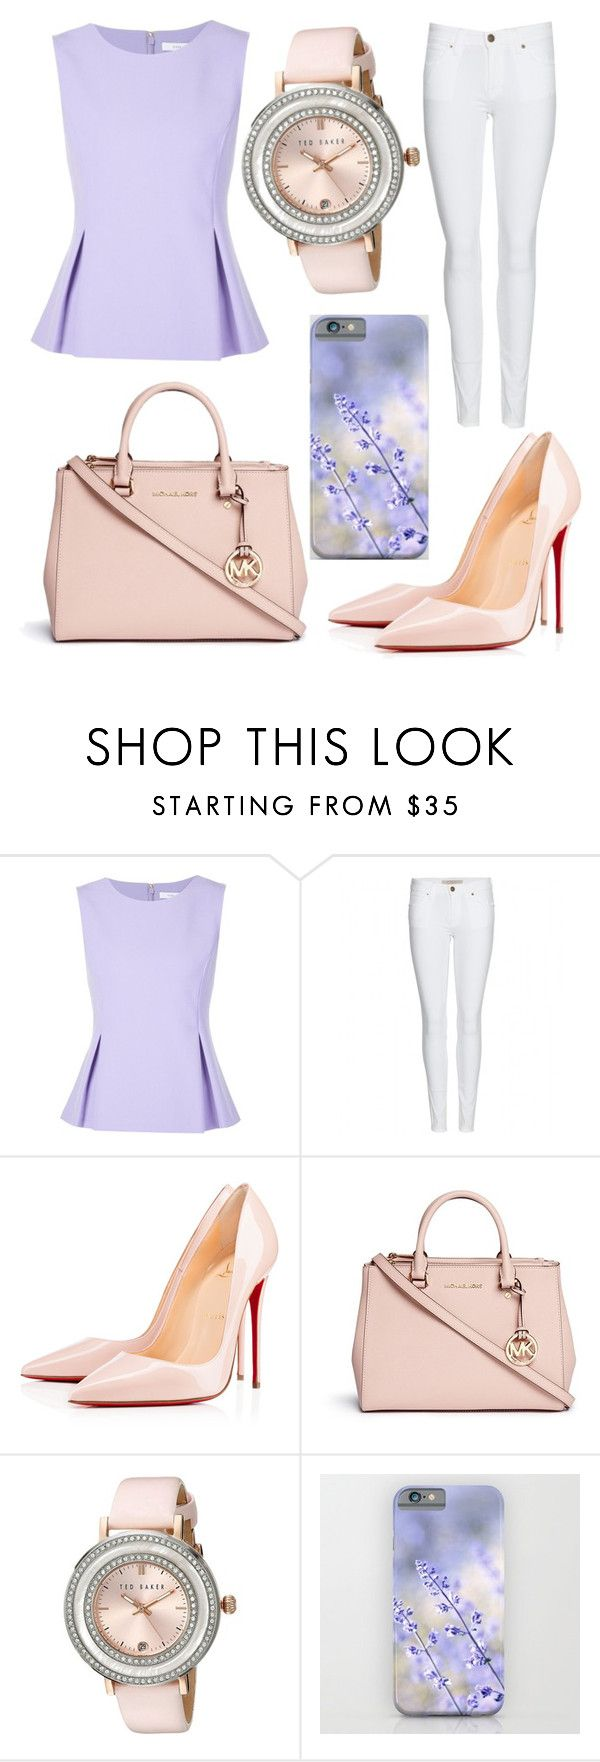 """""""#182"""" by glitterunicorns-are-awesome ❤ liked on Polyvore featuring Diane Von Furstenberg, Burberry, Christian Louboutin, Michael Kors and Ted Baker"""